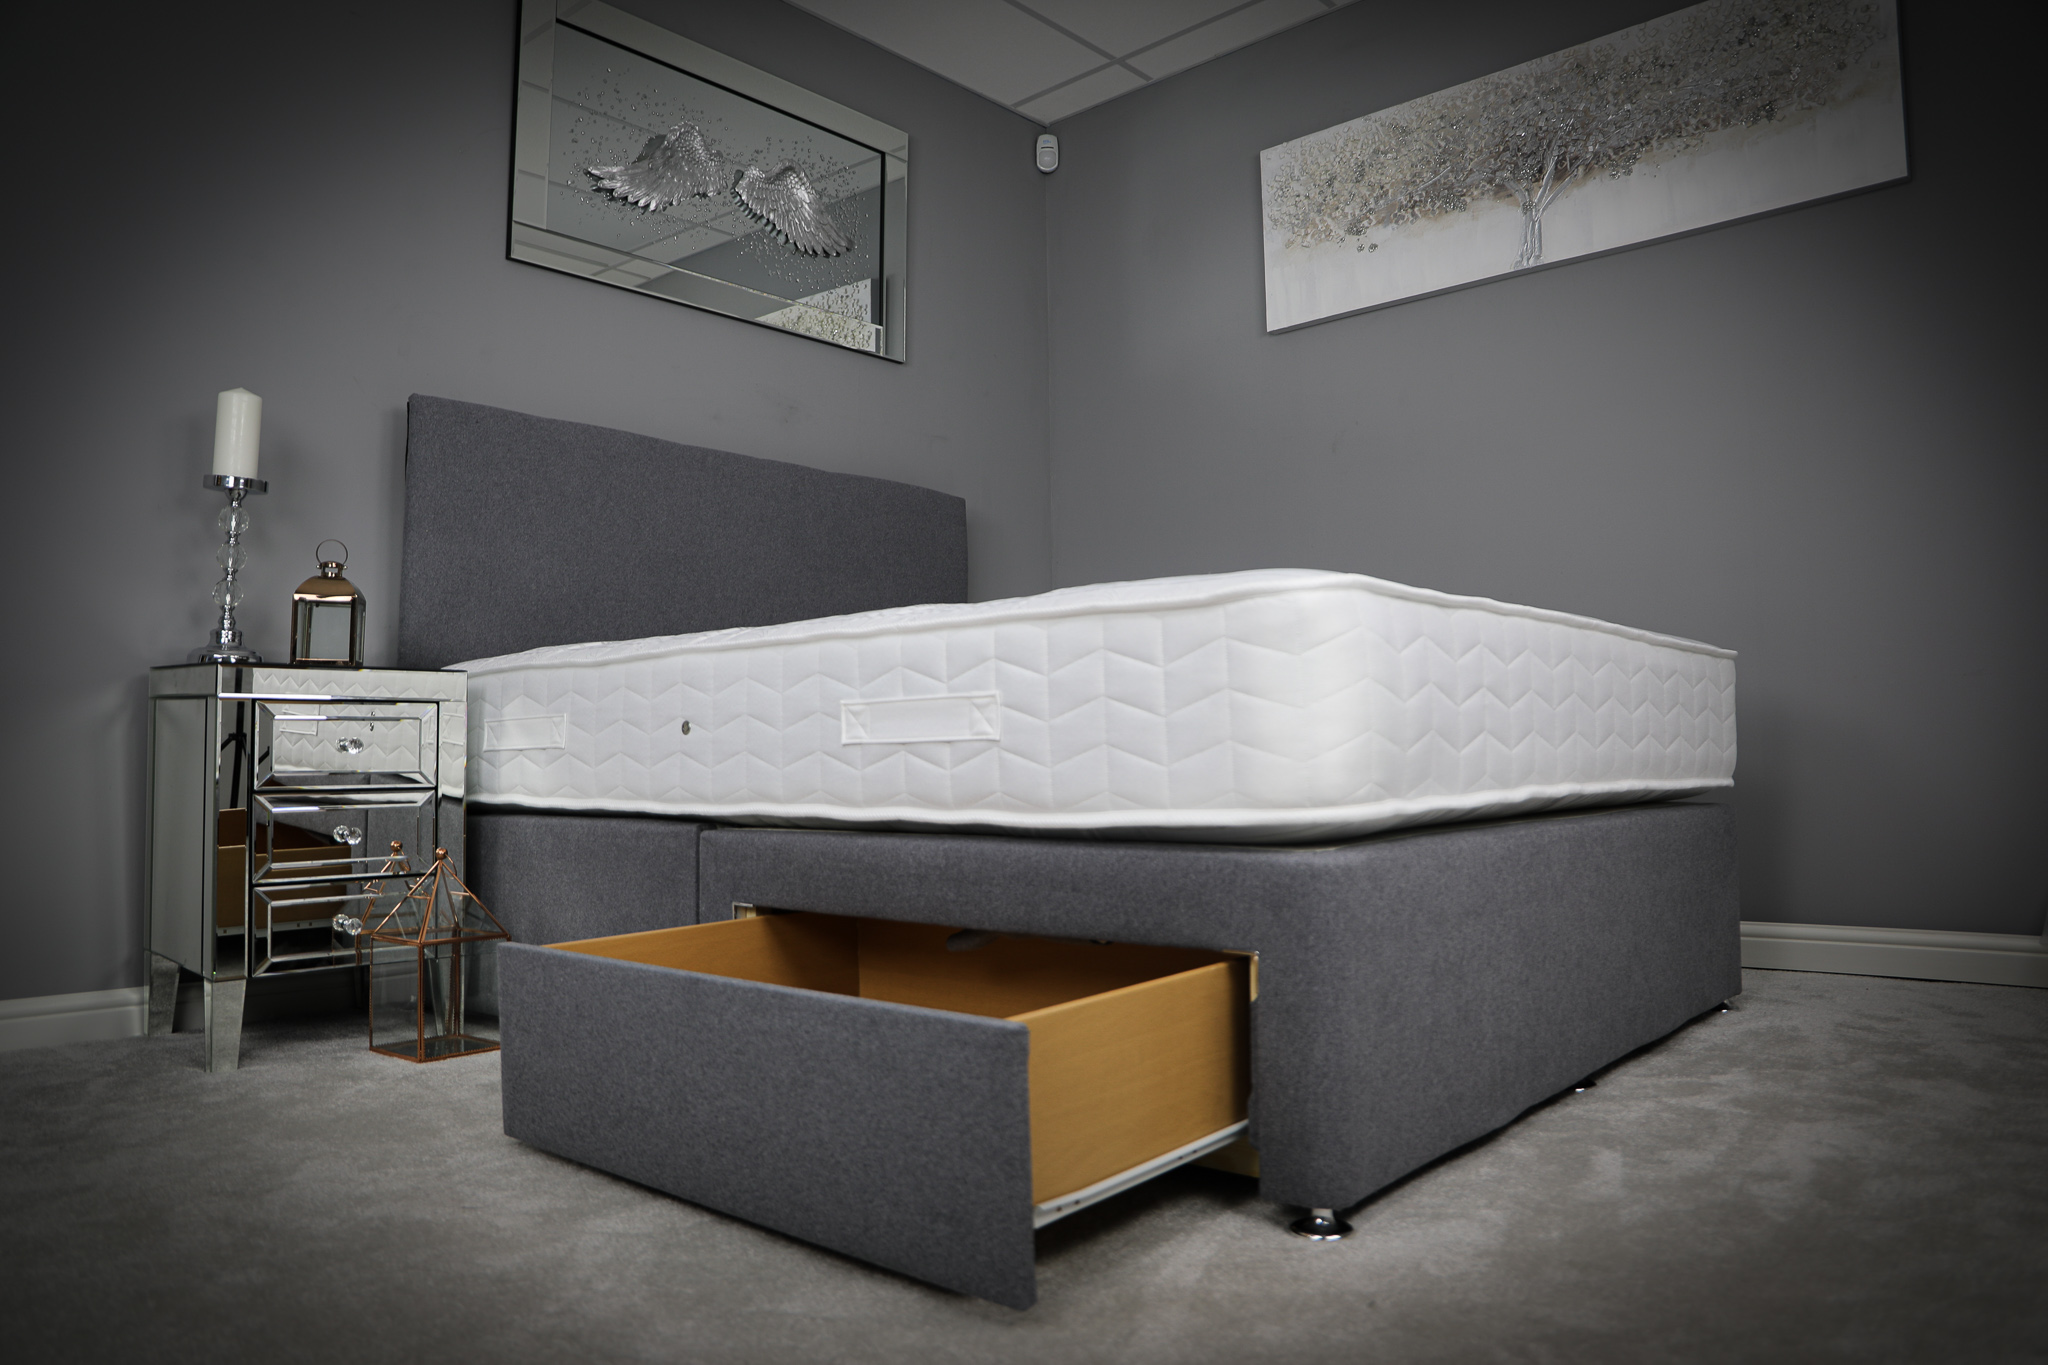 Sognatori Ortho Comodita Divan With Drawers & Headboard